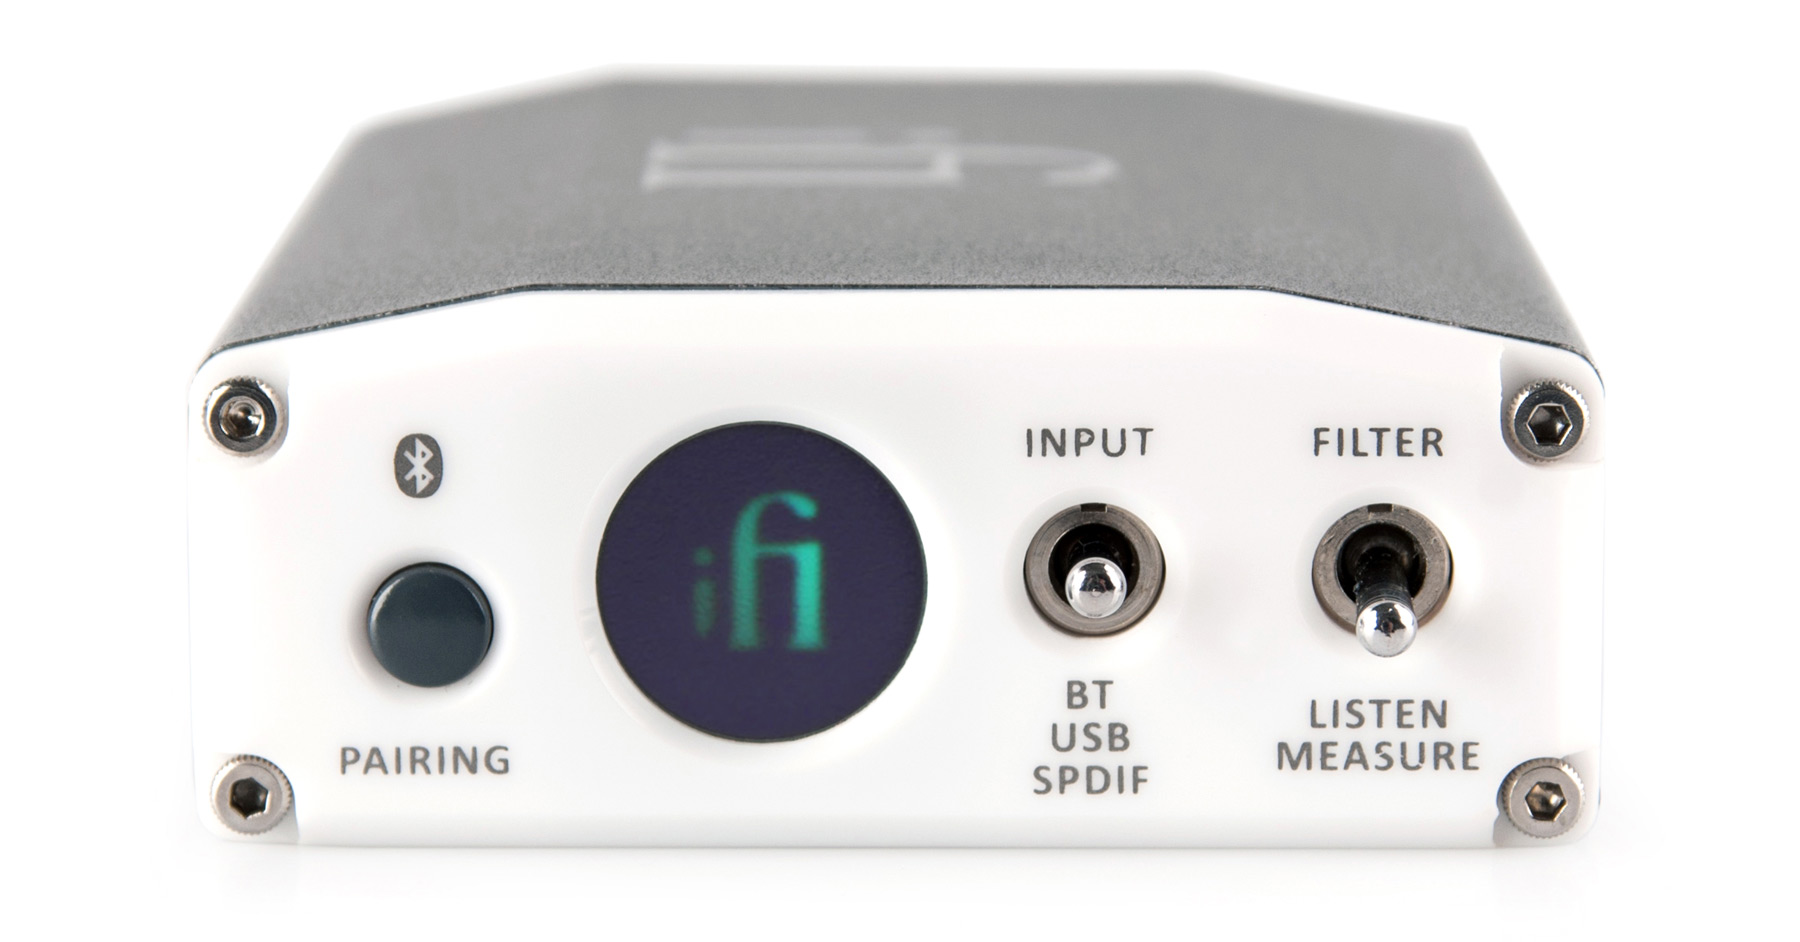 Nano Ione By Ifi Audio Home Dac With Bluetooth Noise Filter For Stereo System